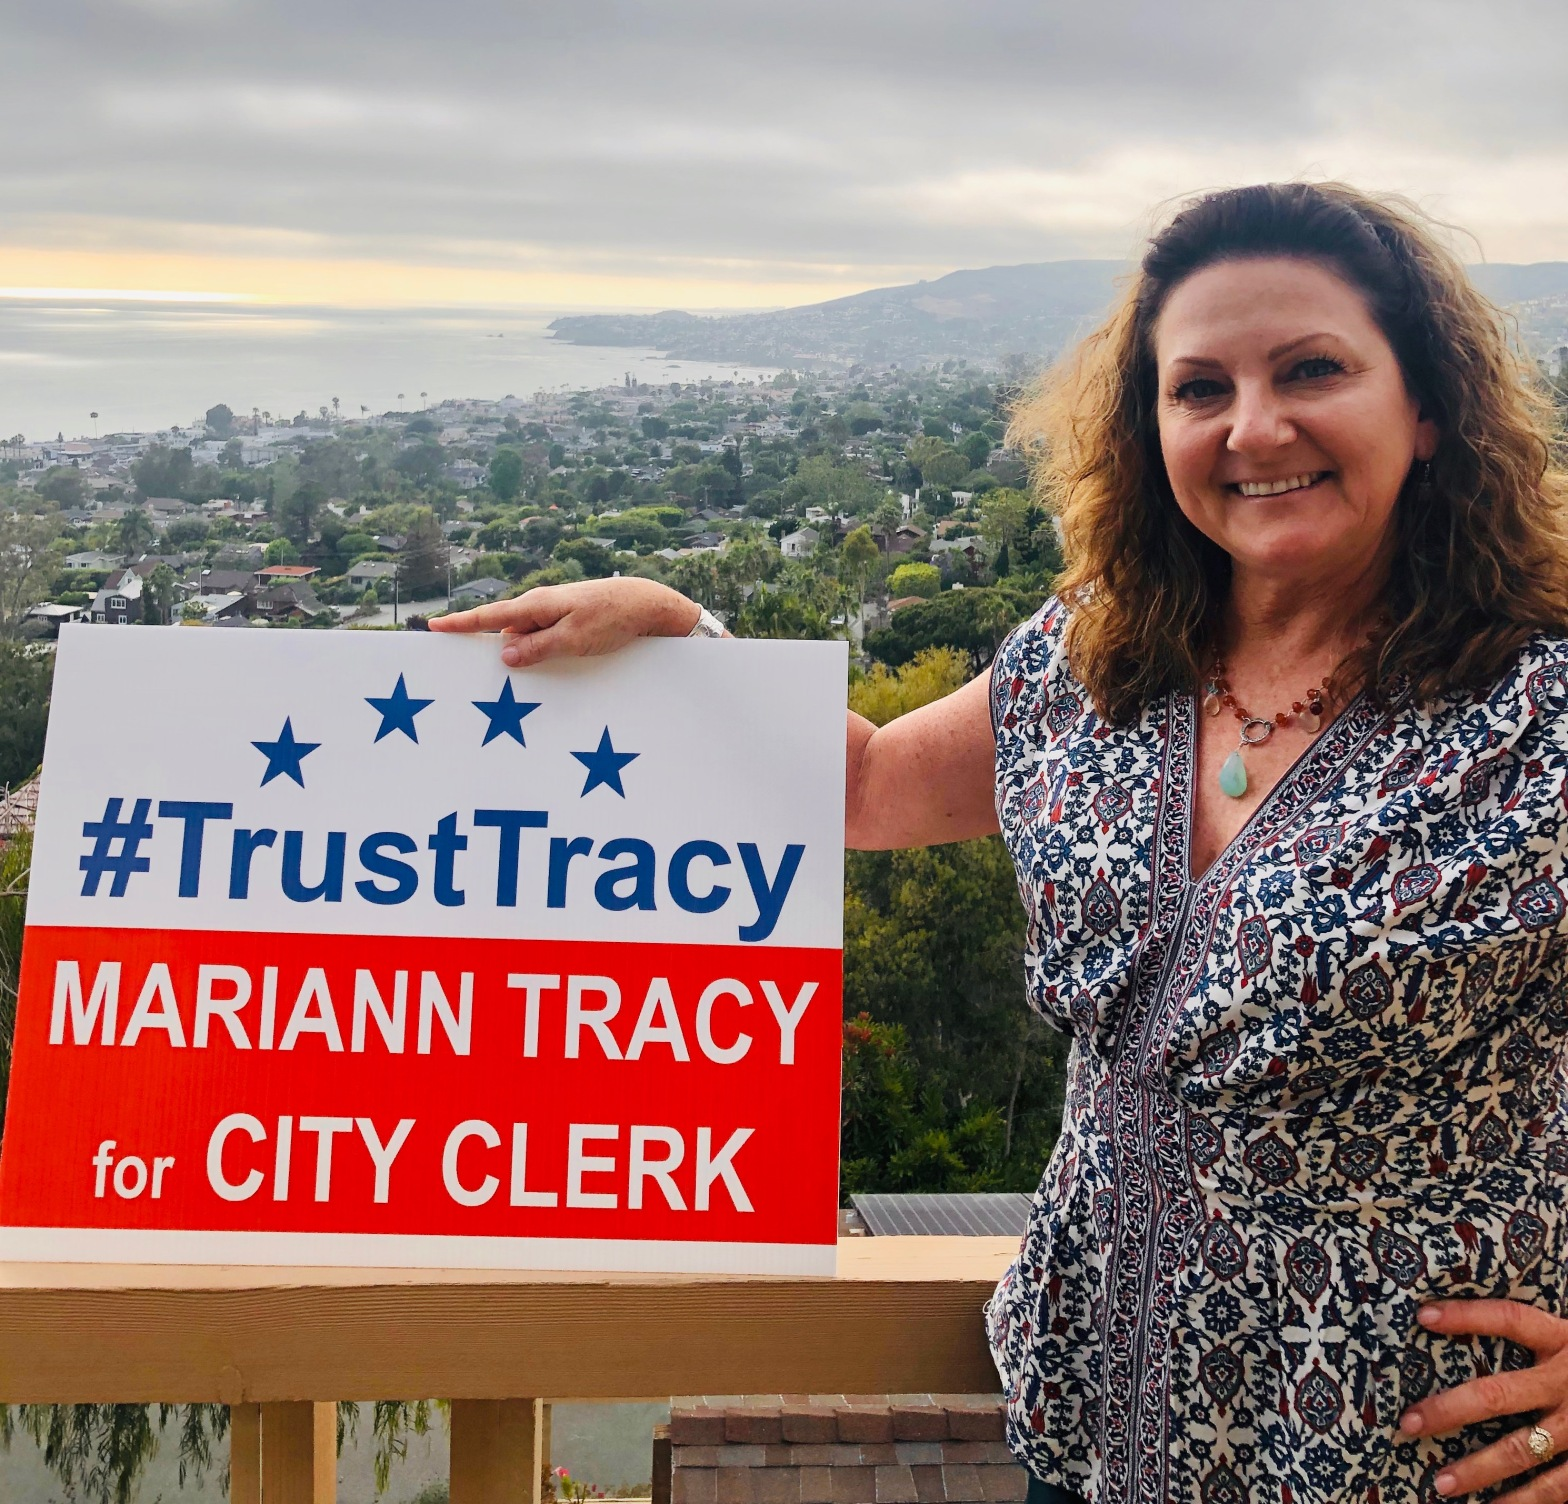 Mariann Tracy for City Clerk